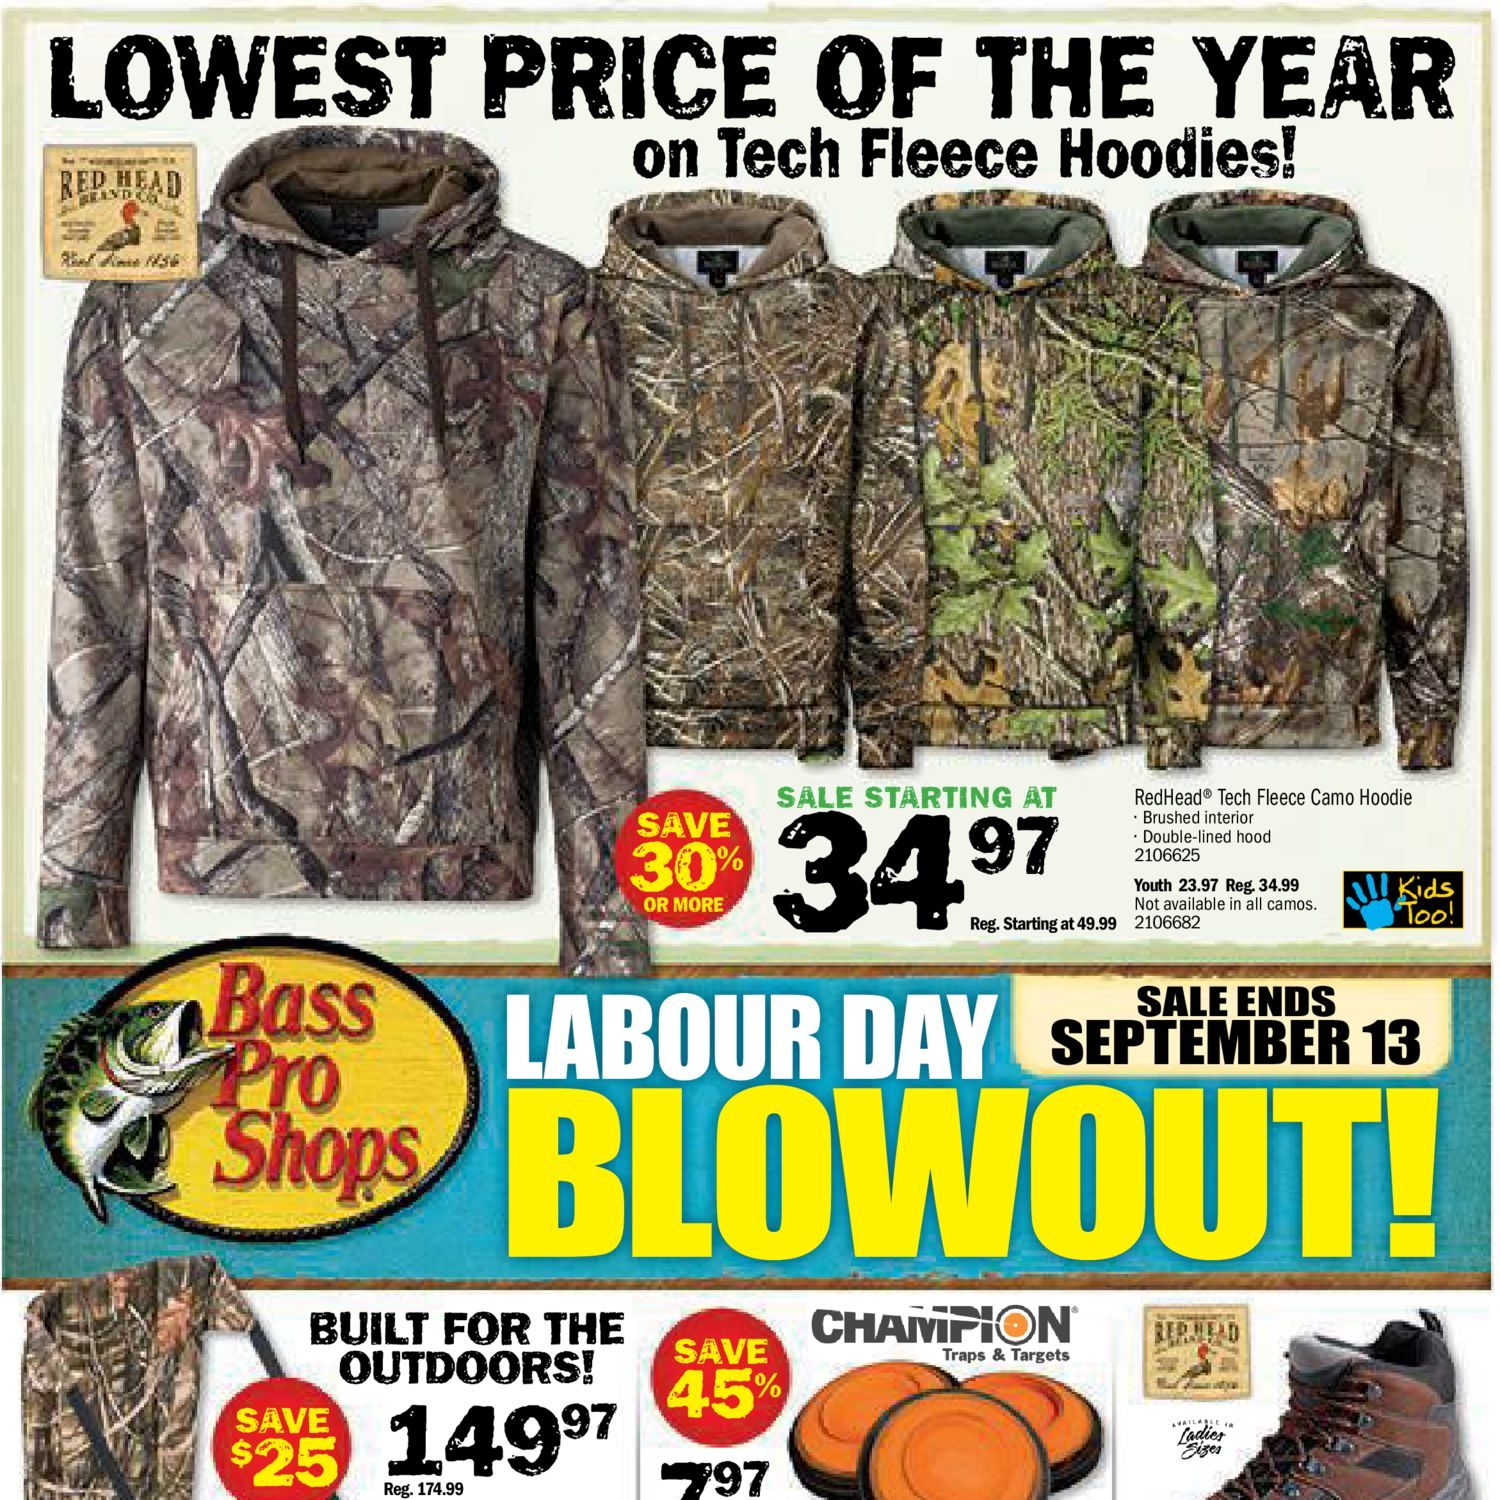 b60f2c3ae337f Bass Pro Shops Weekly Flyer - Labour Day Blowout! - Aug 31 – Sep 13 -  RedFlagDeals.com